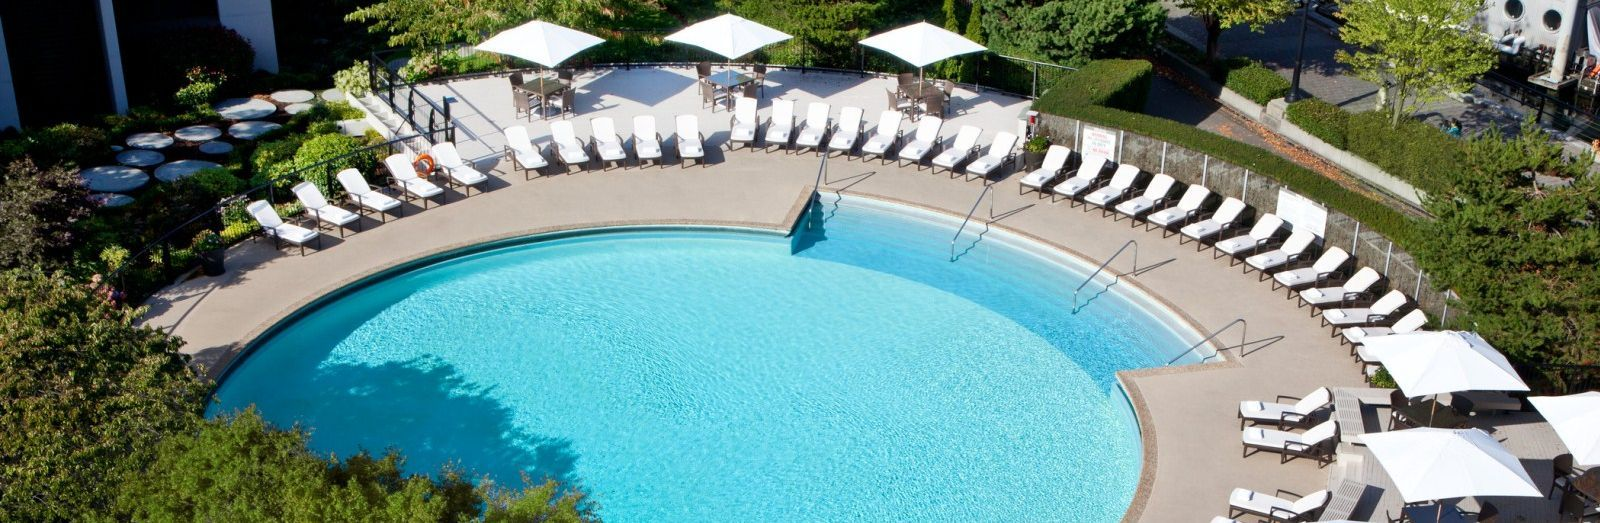 Enjoy our Vancouver hotel pool experience with our day pass package at The Westin Bayshore, Vancouver resort.